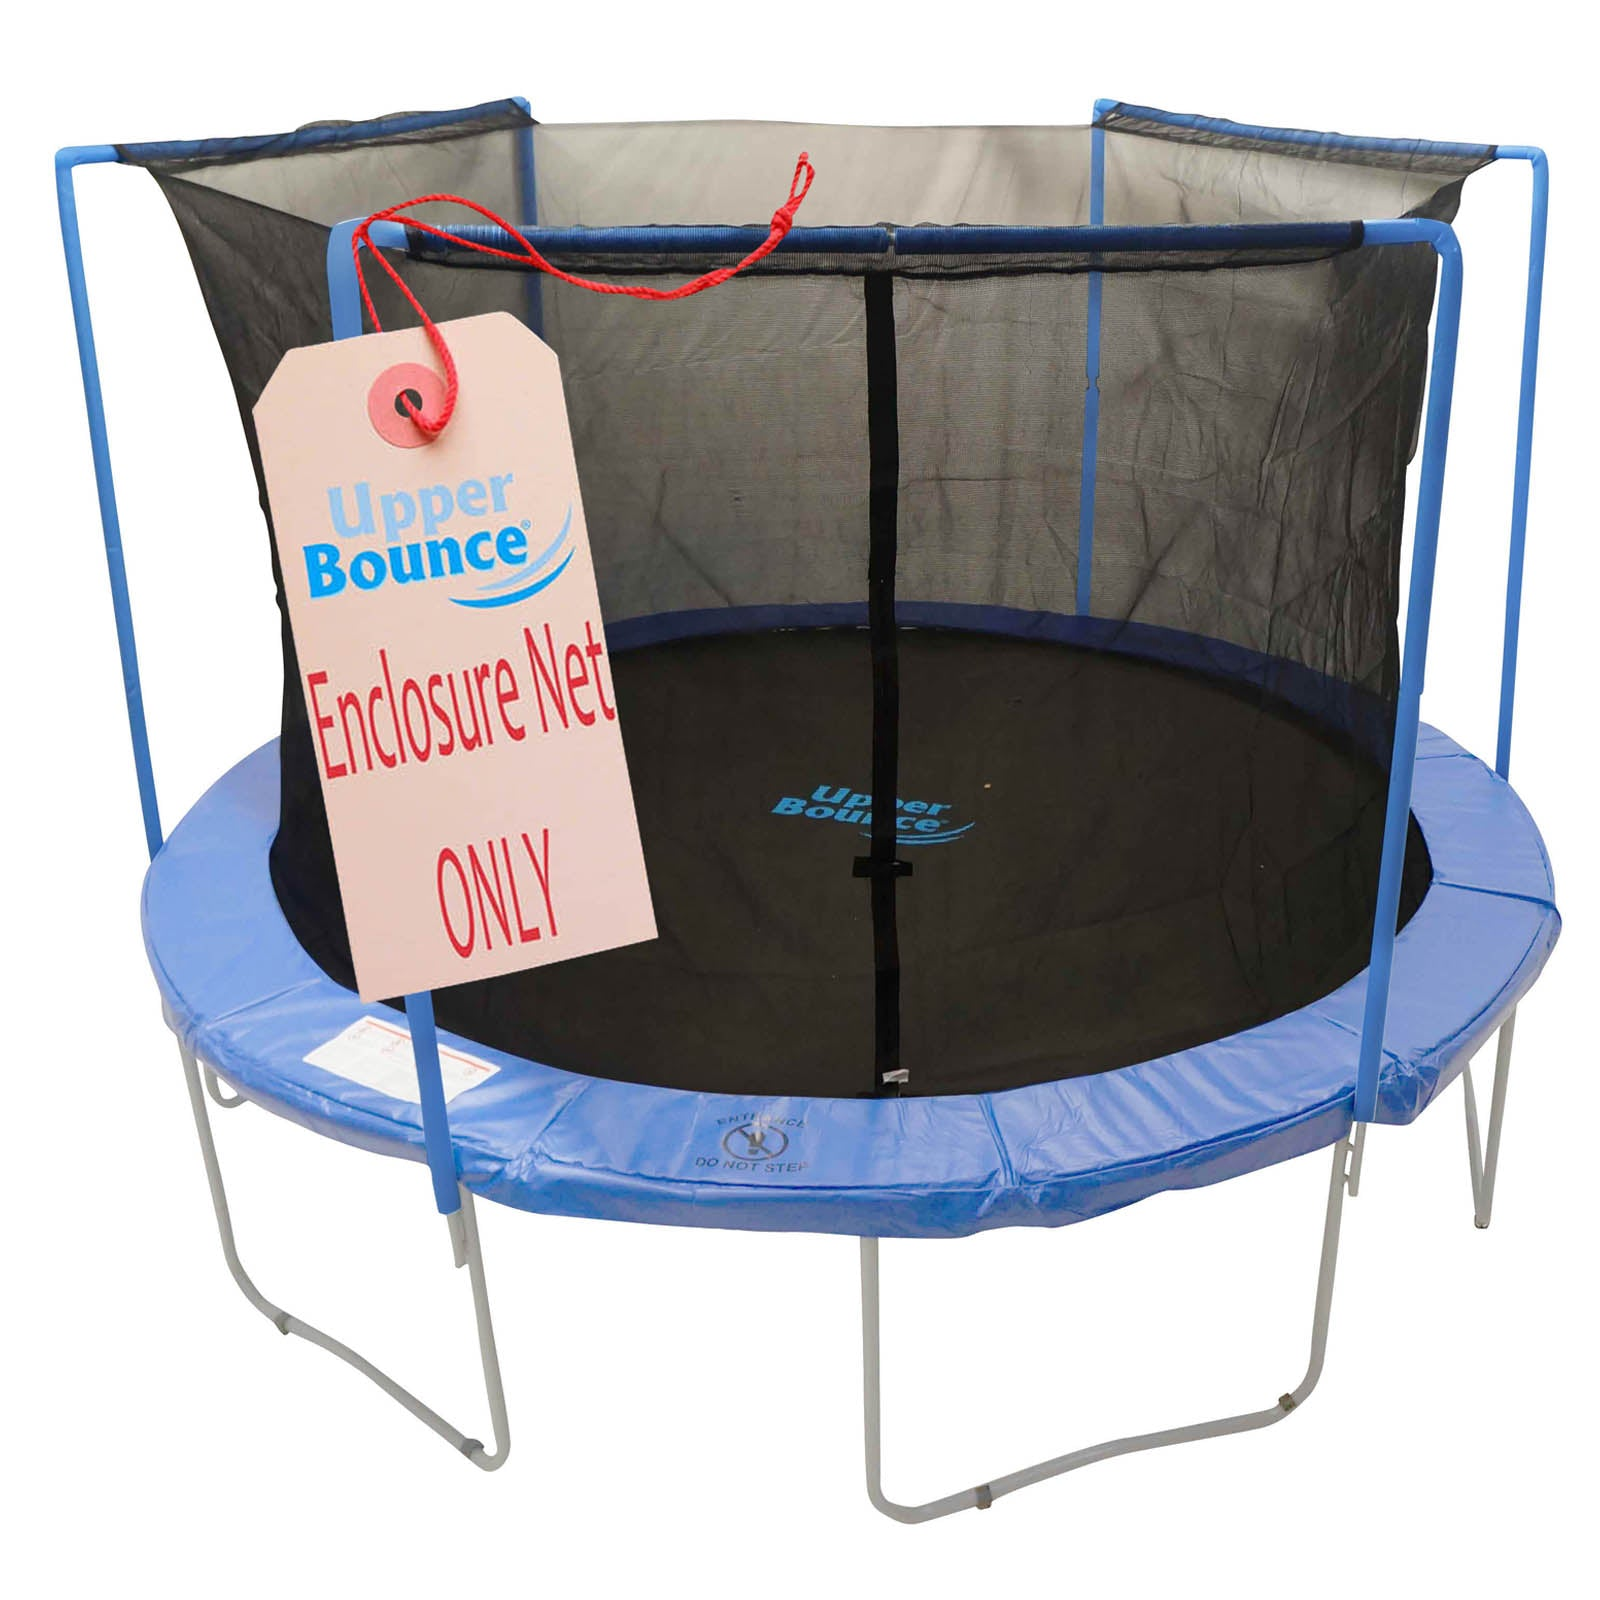 Trampoline Replacement Enclosure Safety Net, Fits For 7 FT. Round Frames, Using 3 Arches, with Sleeves on top -NET ONLY - onlinesportsmall